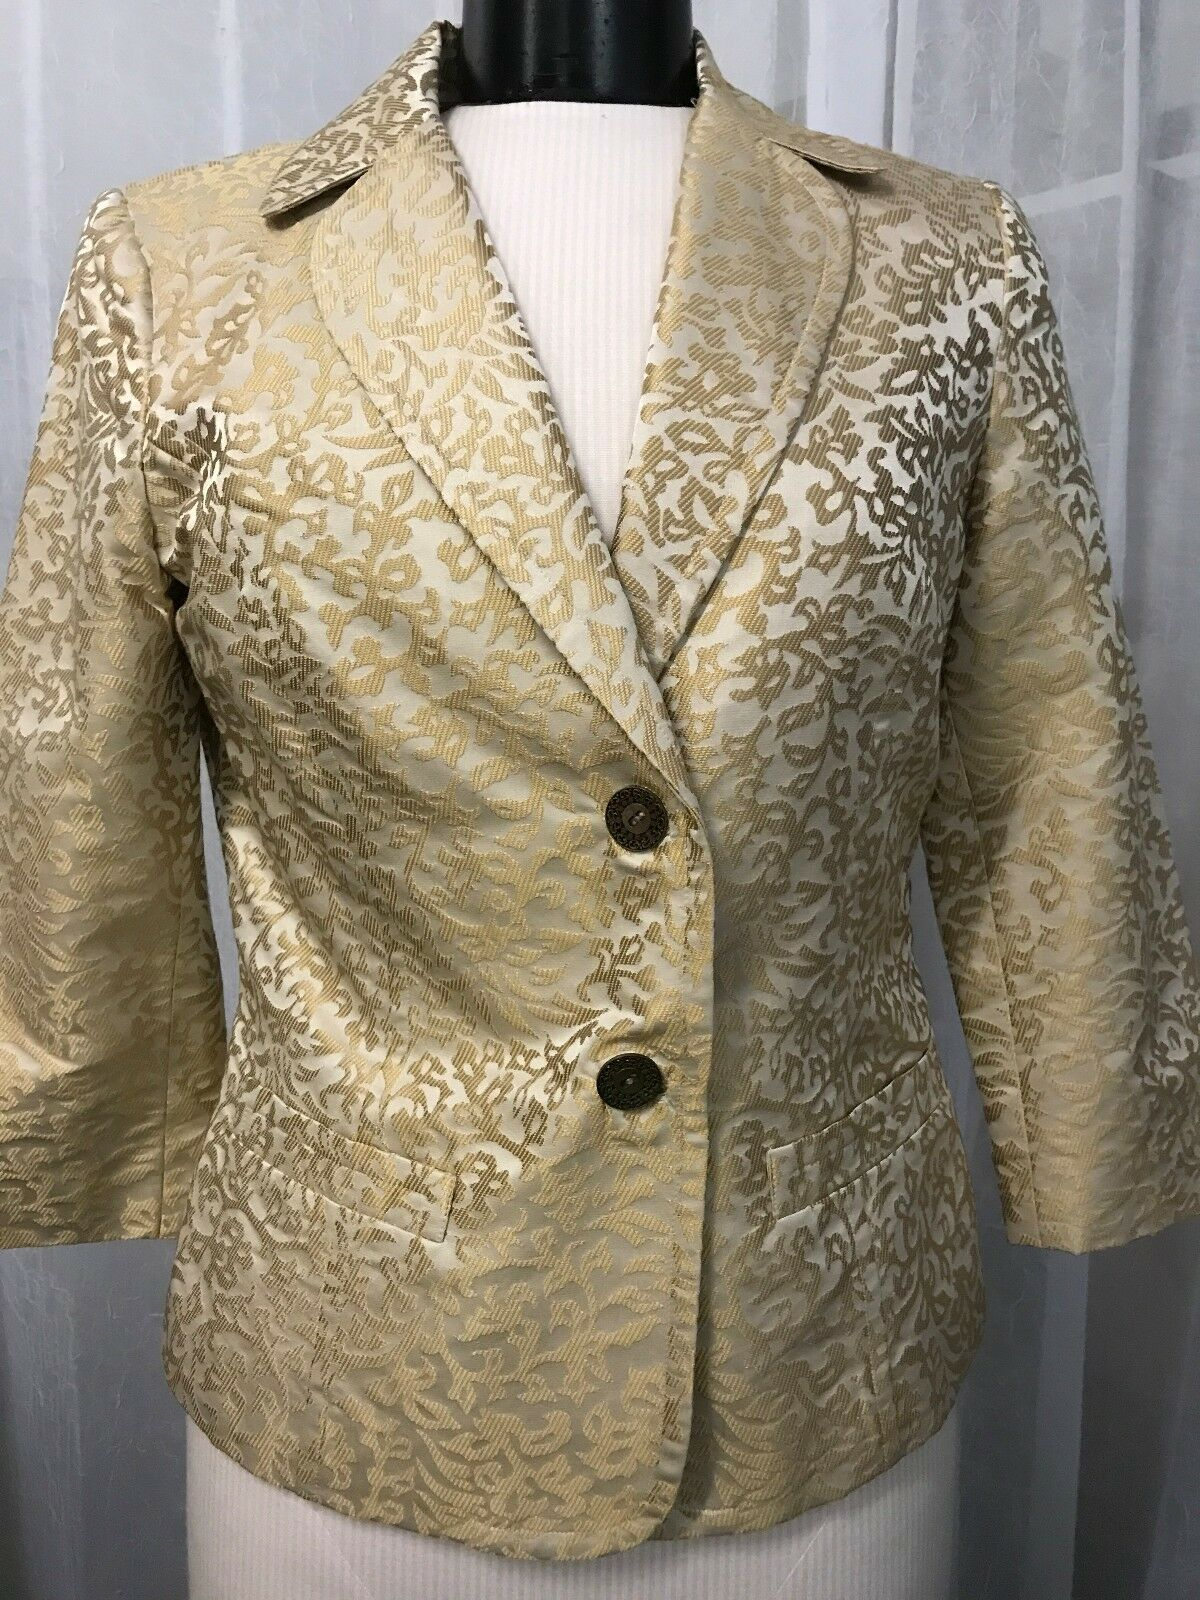 Sigrid Olsen Women's Blazer Tan and With gold Tapestry Print Blazer Size 6